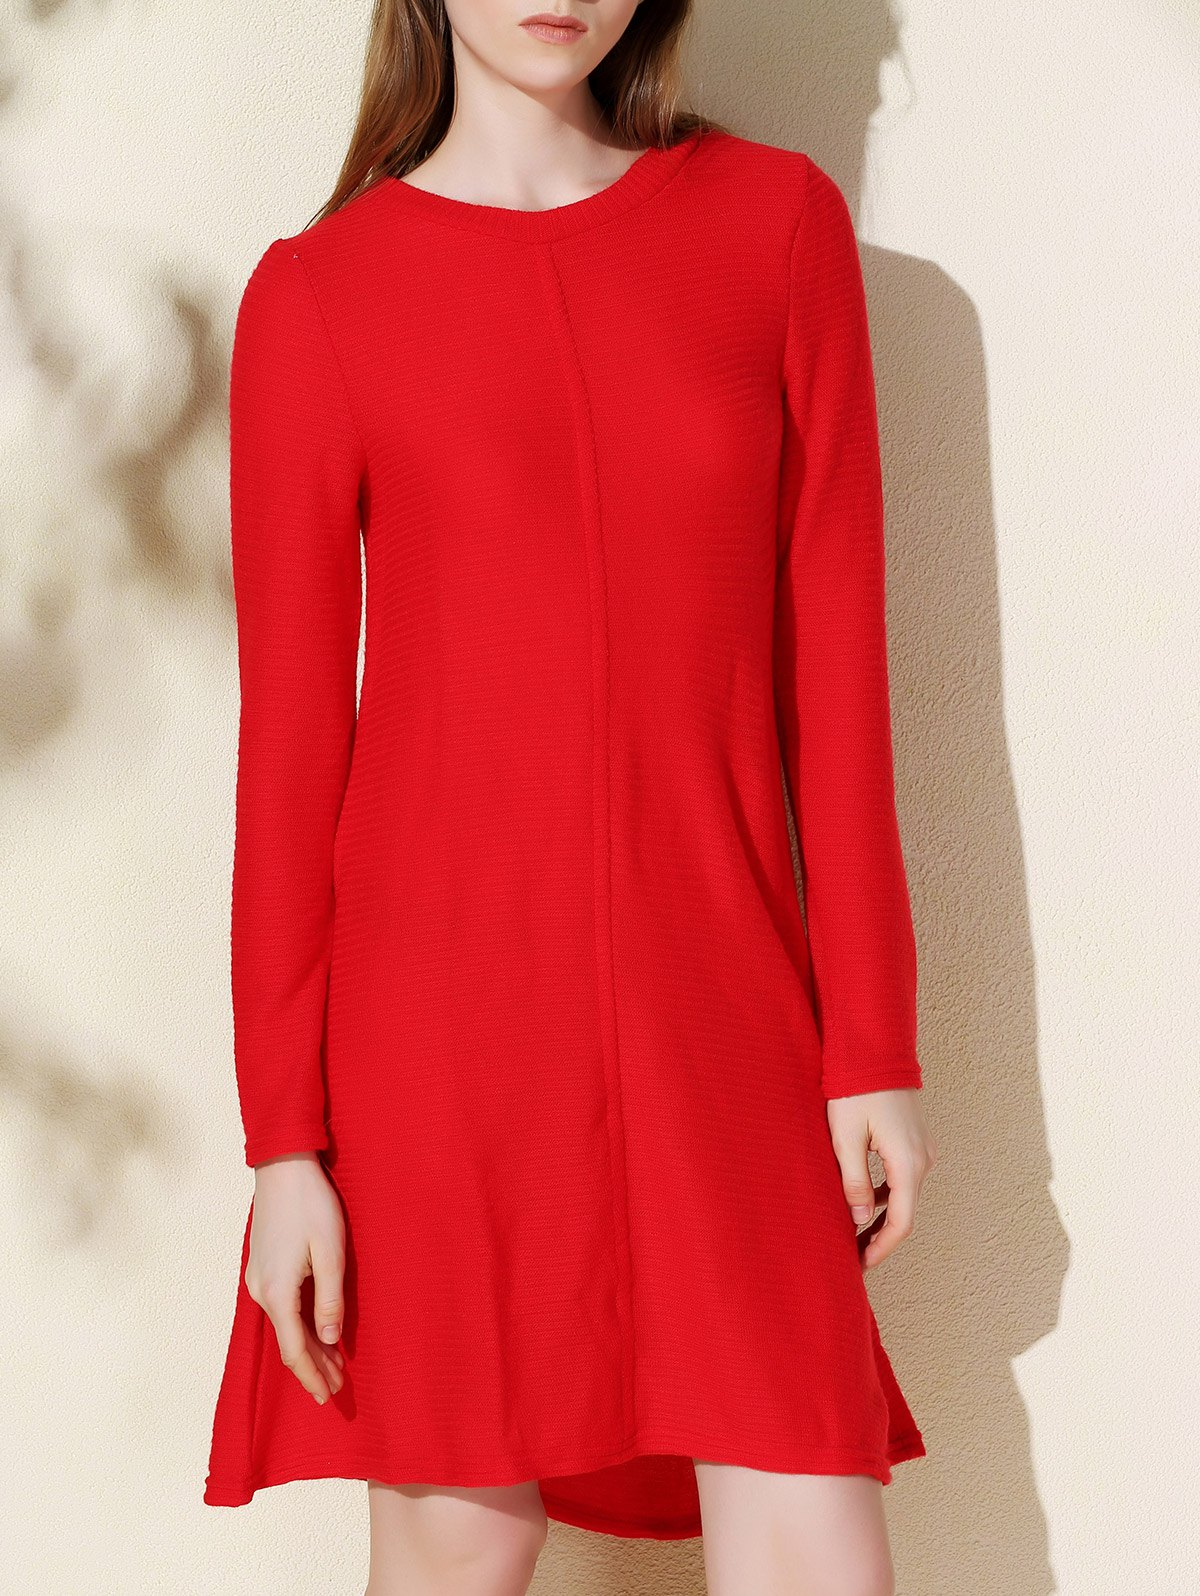 Round Collar Long Sleeve Knitted Dress - RED XL